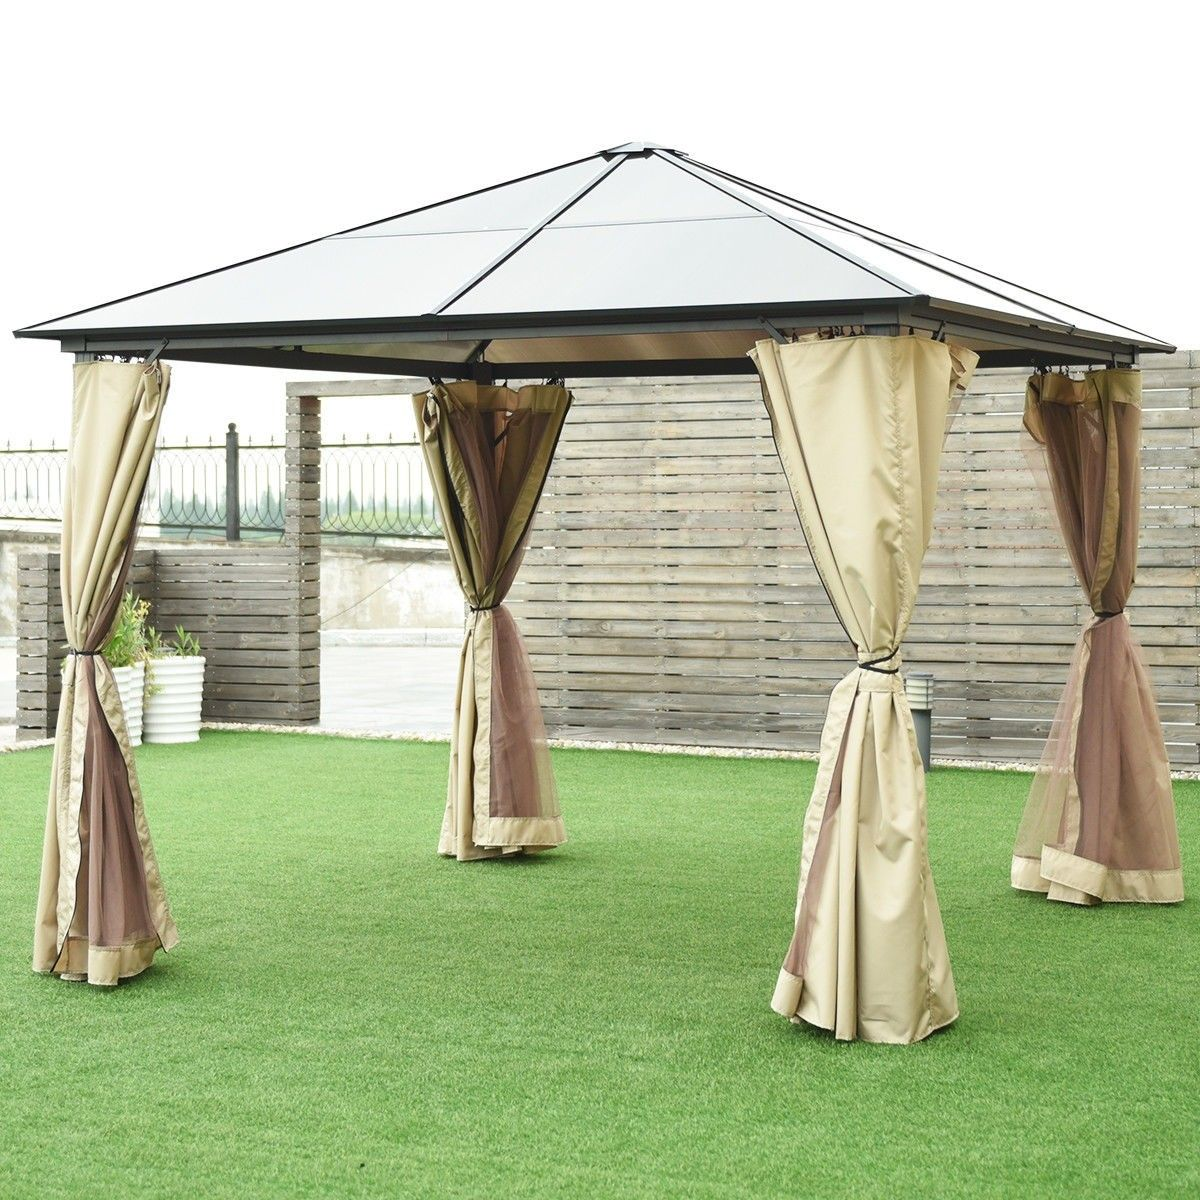 10 X 10 Gazebo Canopy Shelter Patio Party Tent Gazebo Canopy Gazebo Canopy Shelter